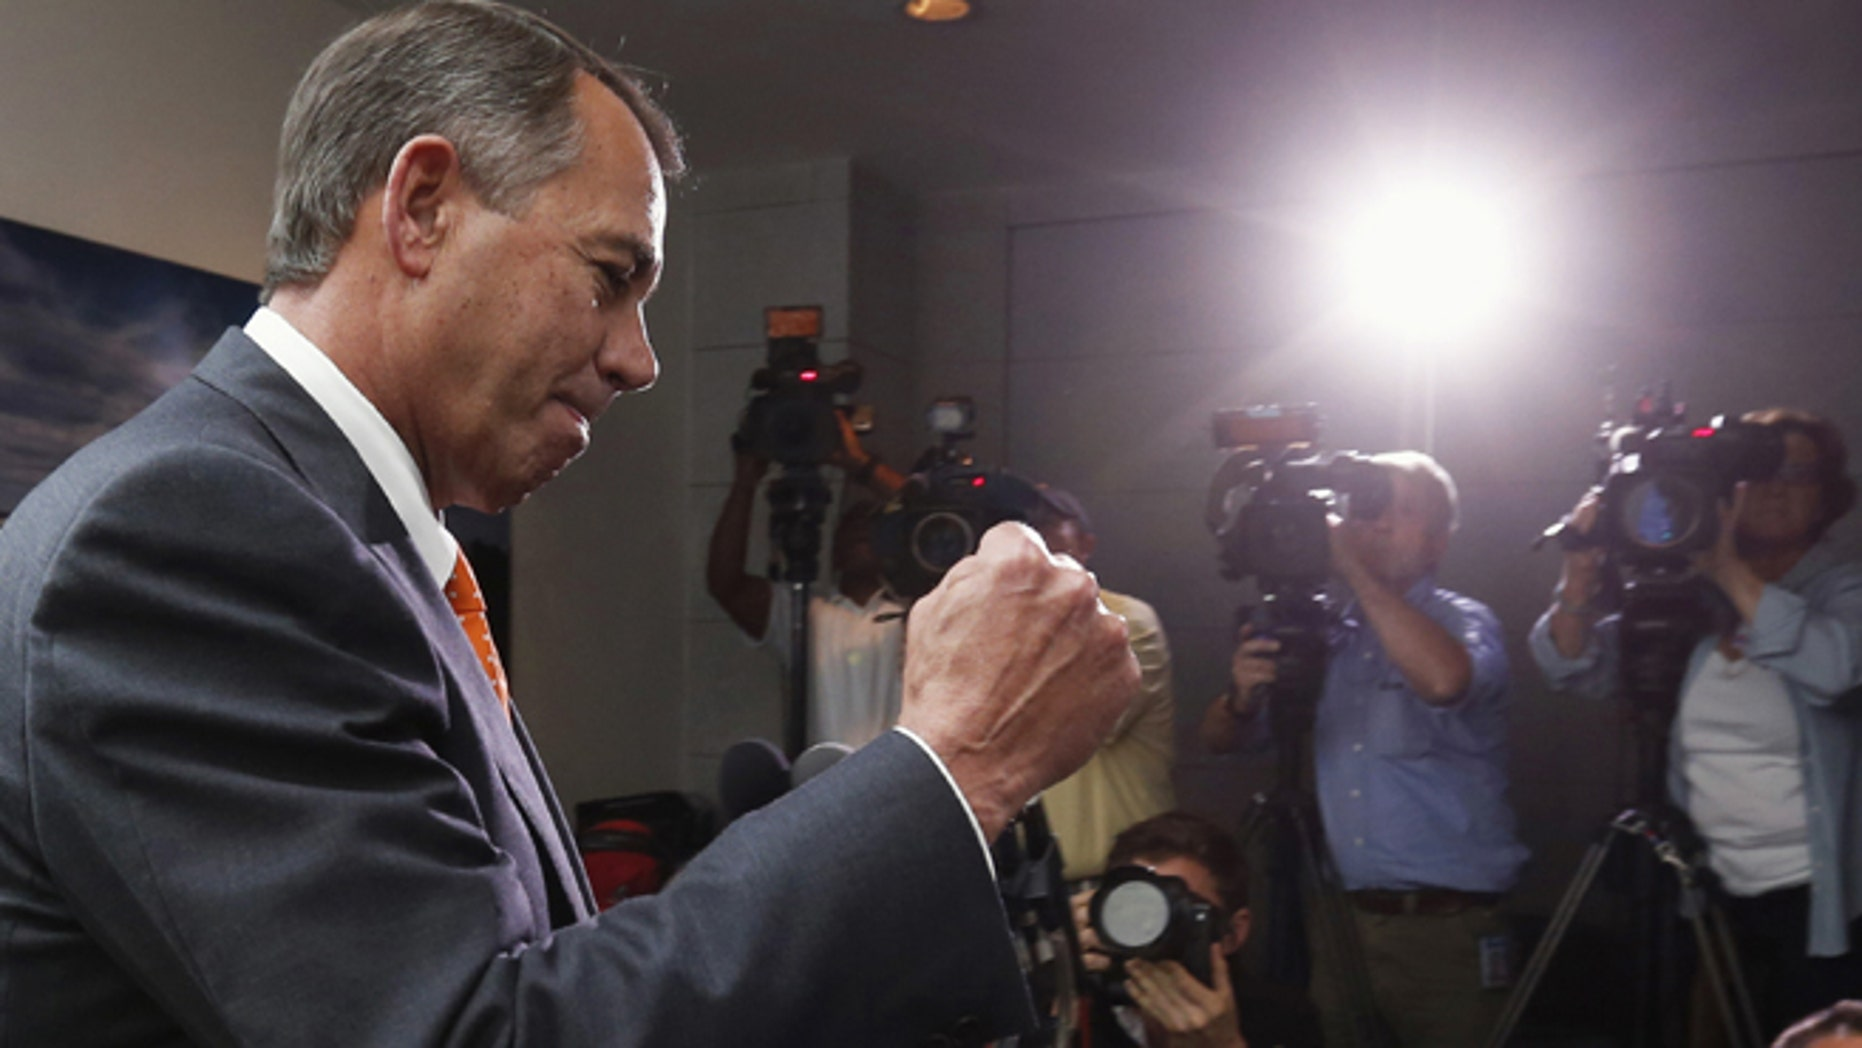 Speaker of the House John Boehner pumps his fist as he emerges from a meeting with Republican House members  in the U.S. Capitol in Washington October 16, 2013.